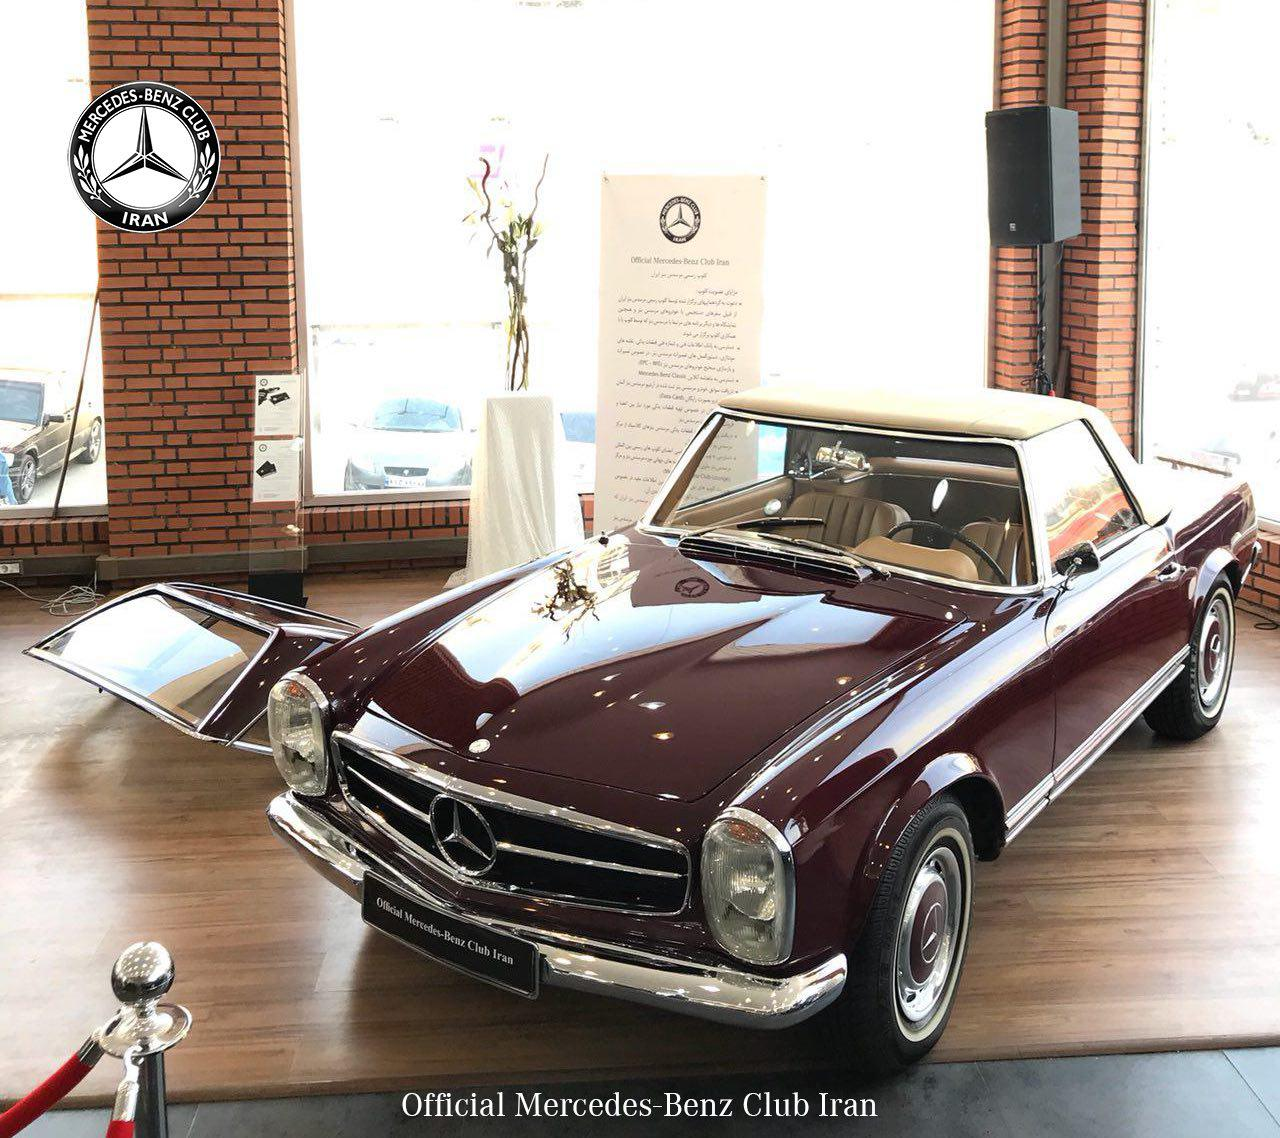 Mercedes-Benz Club Iran